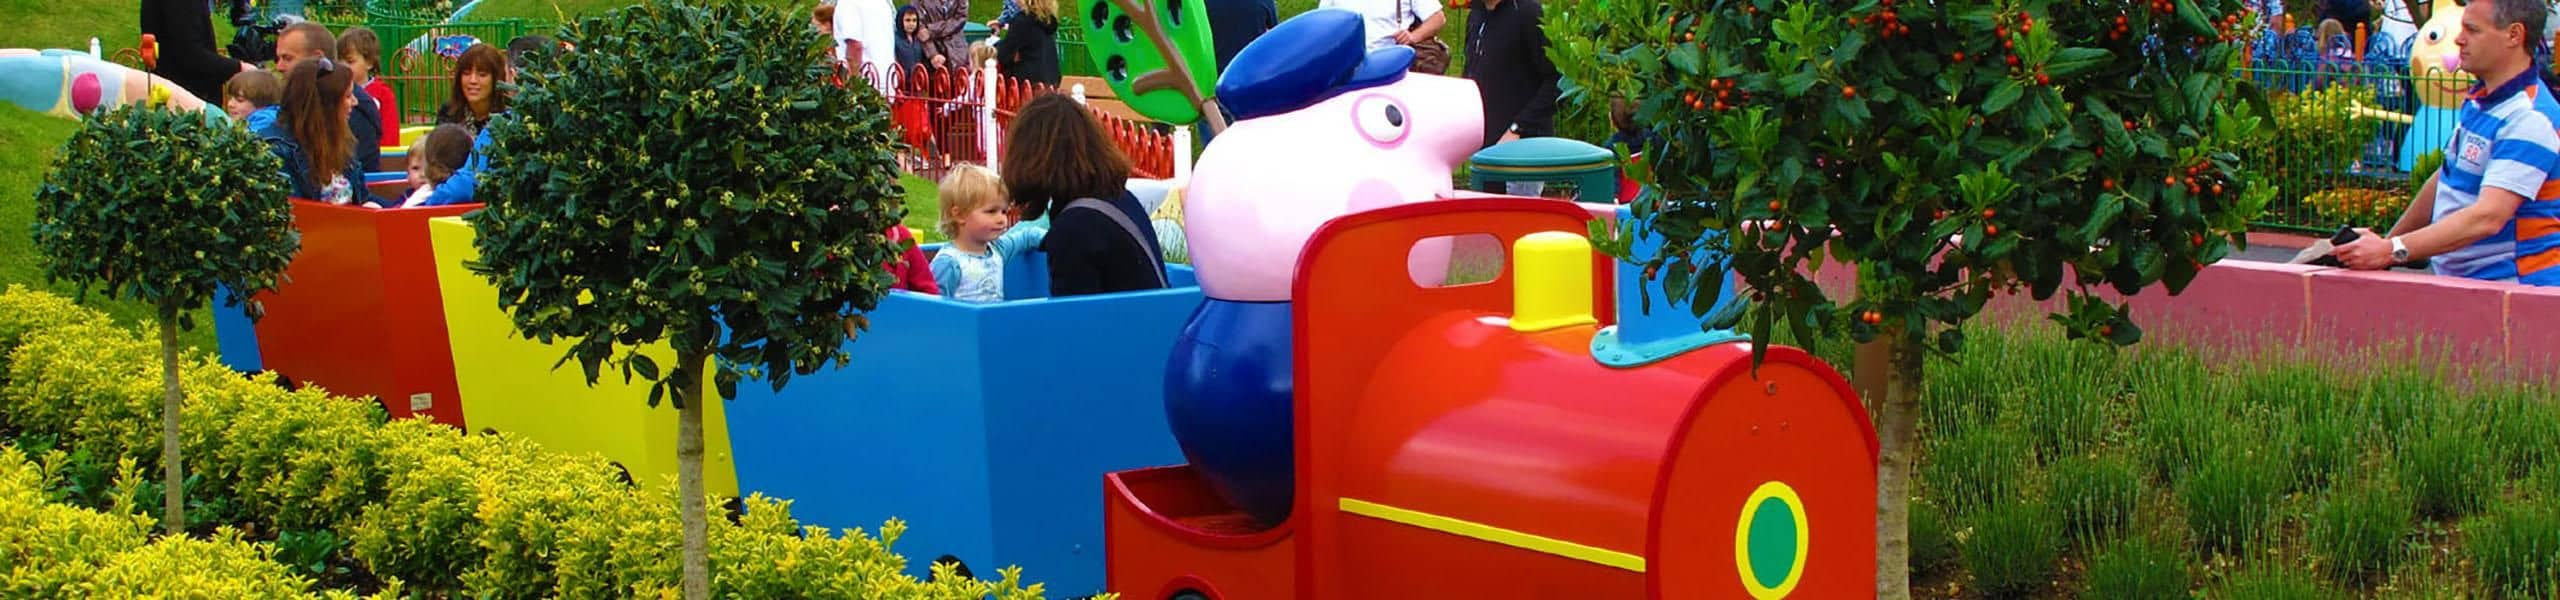 Grandpa Pig's Little Train